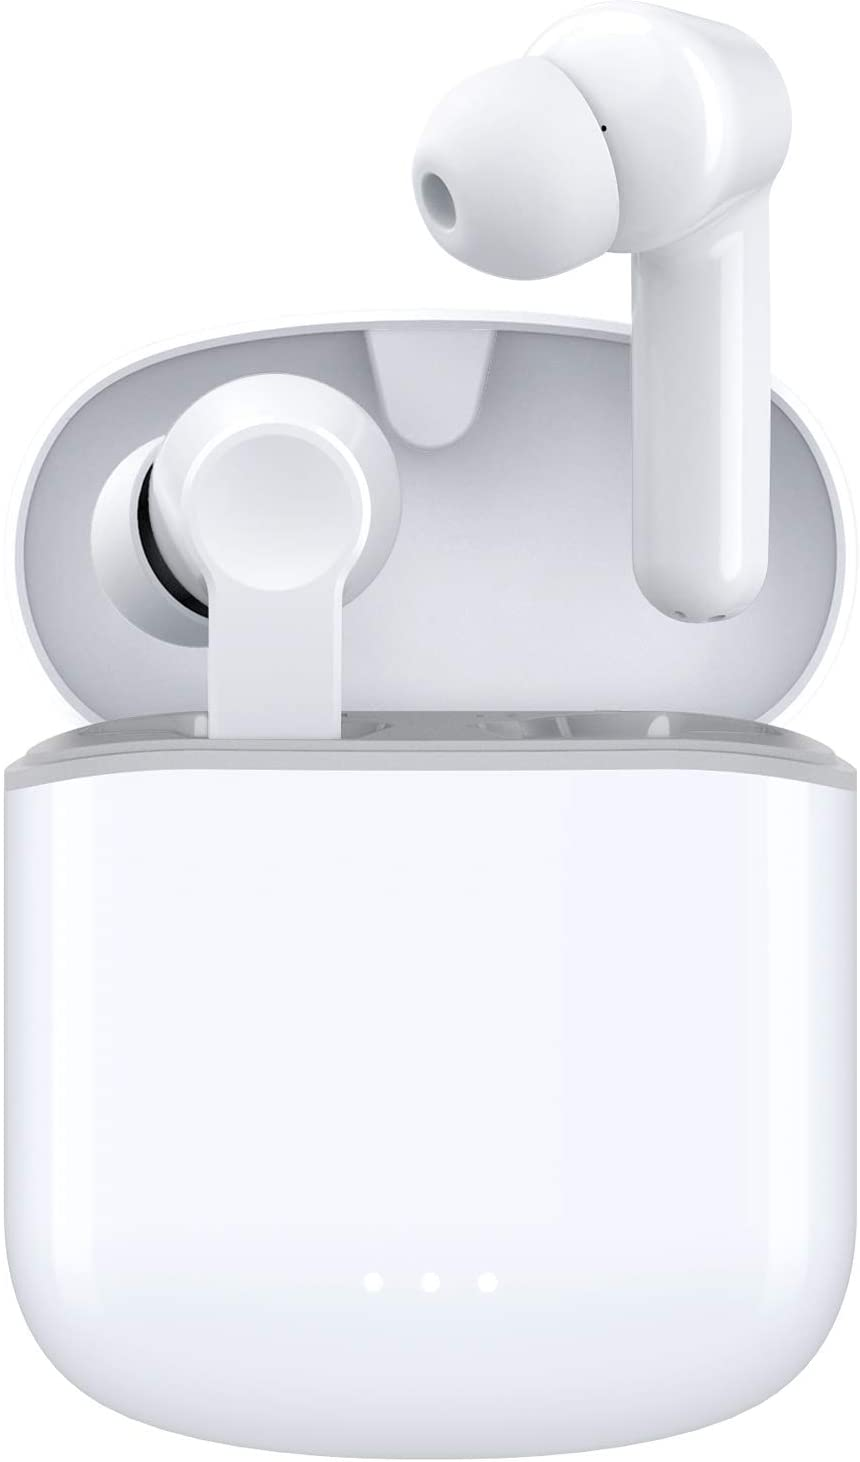 Wireless Earbuds, Bluetooth 5.0 Earbuds Hi-Fi Stereo Headphones 30H Playtime True Wireless Earbuds IPX6 Waterproof Earphones in-Ear Headphones with Mic and USB C for Working/Travel/Gym(White)